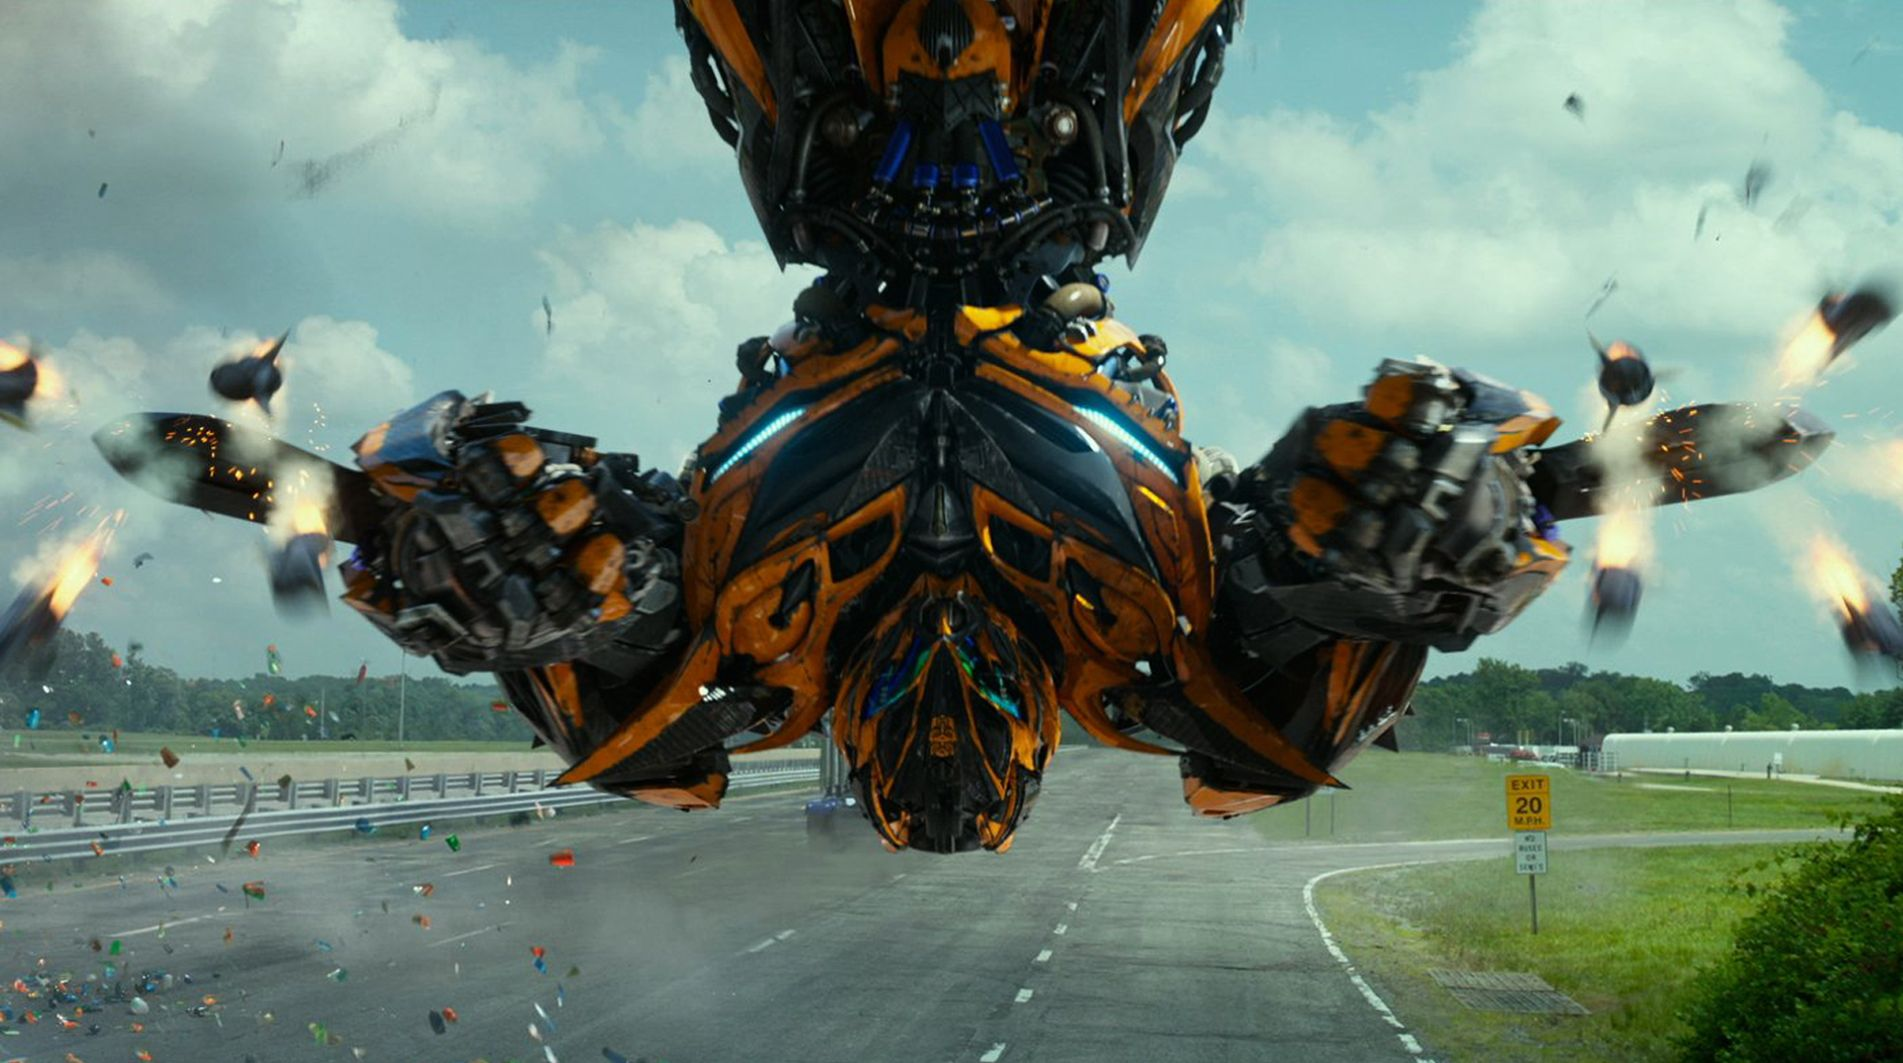 Kubo And The Two Strings Director Moves Onto Transformers